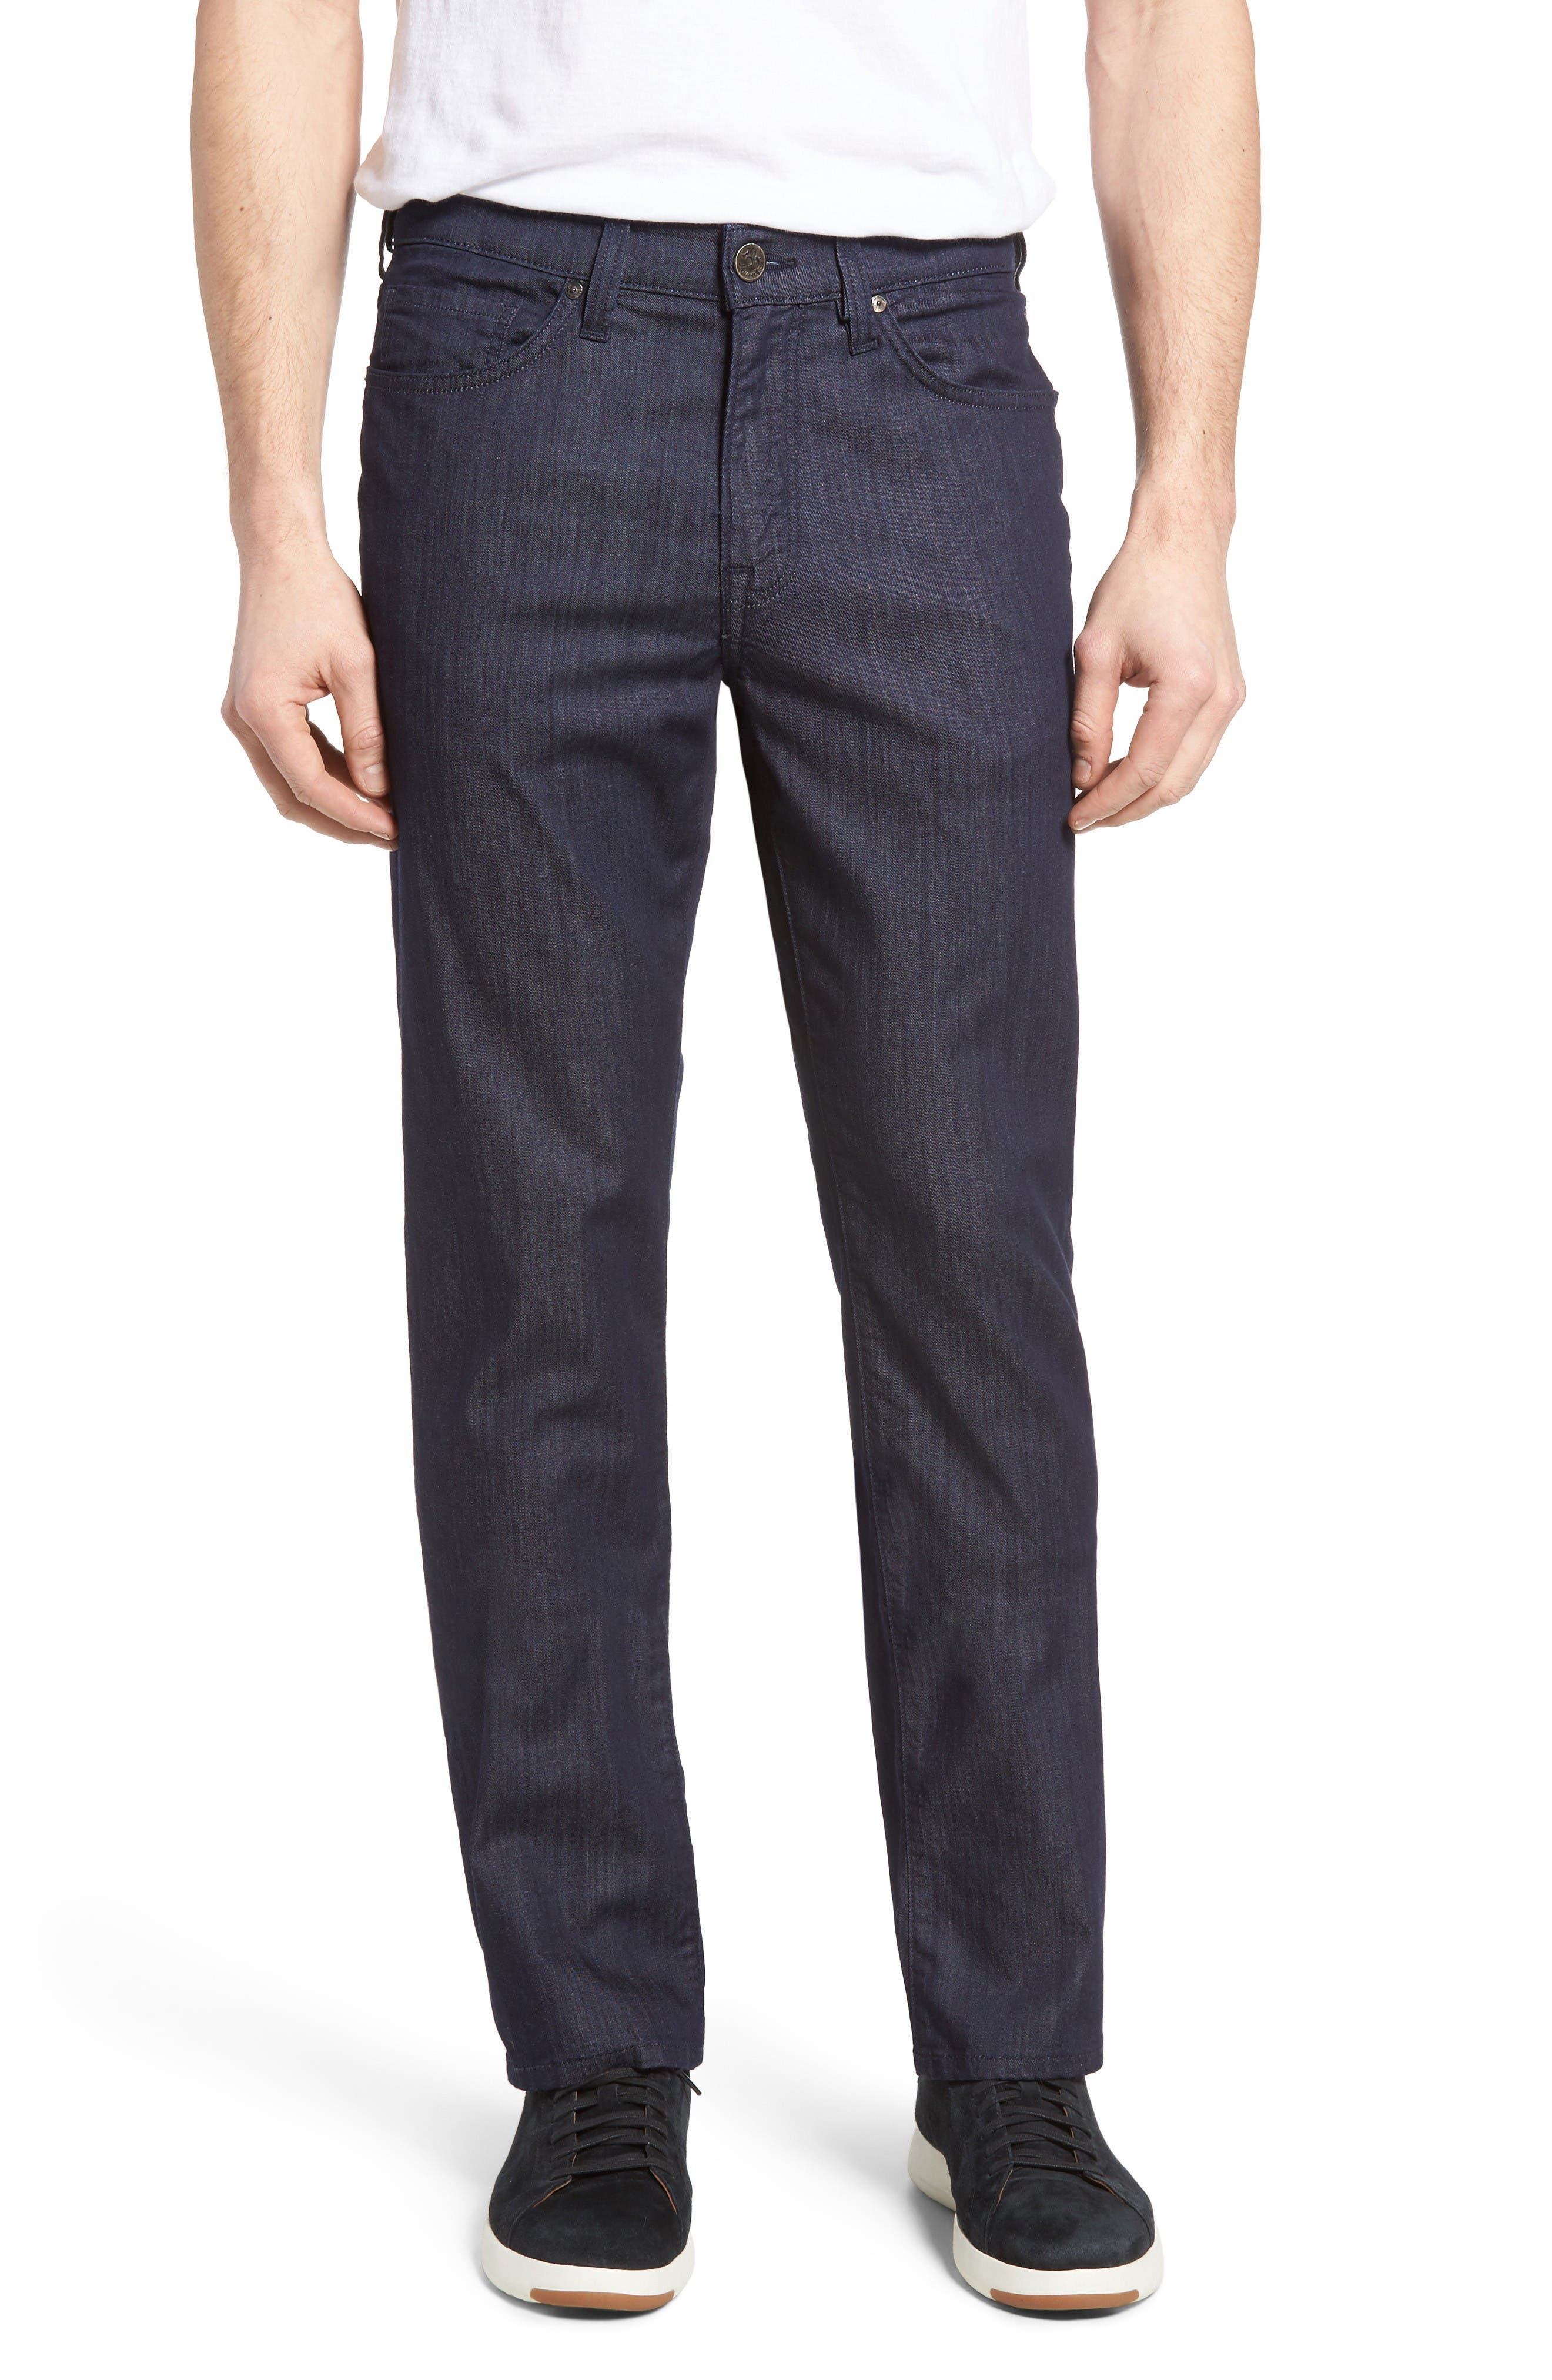 34 Heritage Charisma Relaxed Fit Jeans (Rinse Summer) (Regular & Tall)